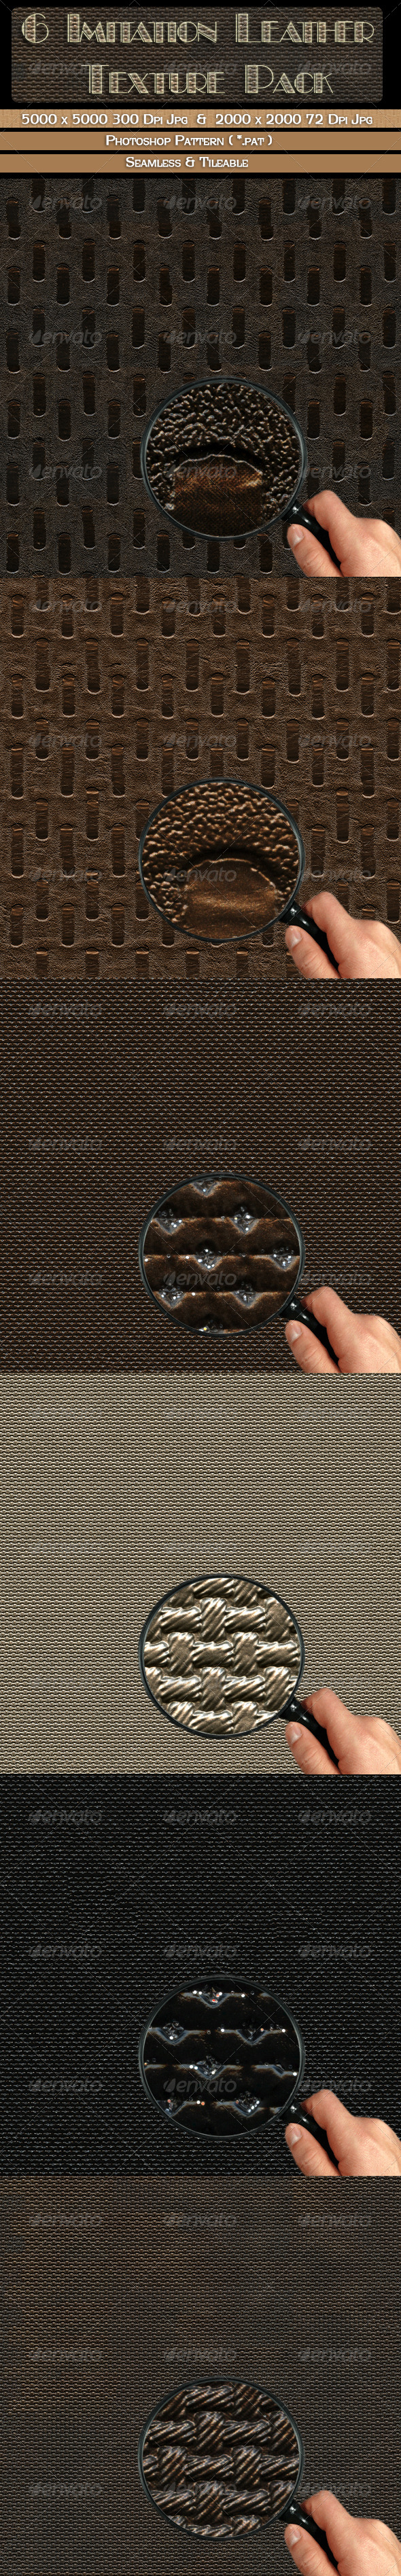 GraphicRiver 6 Imitation Leather Texture Pack 4499533